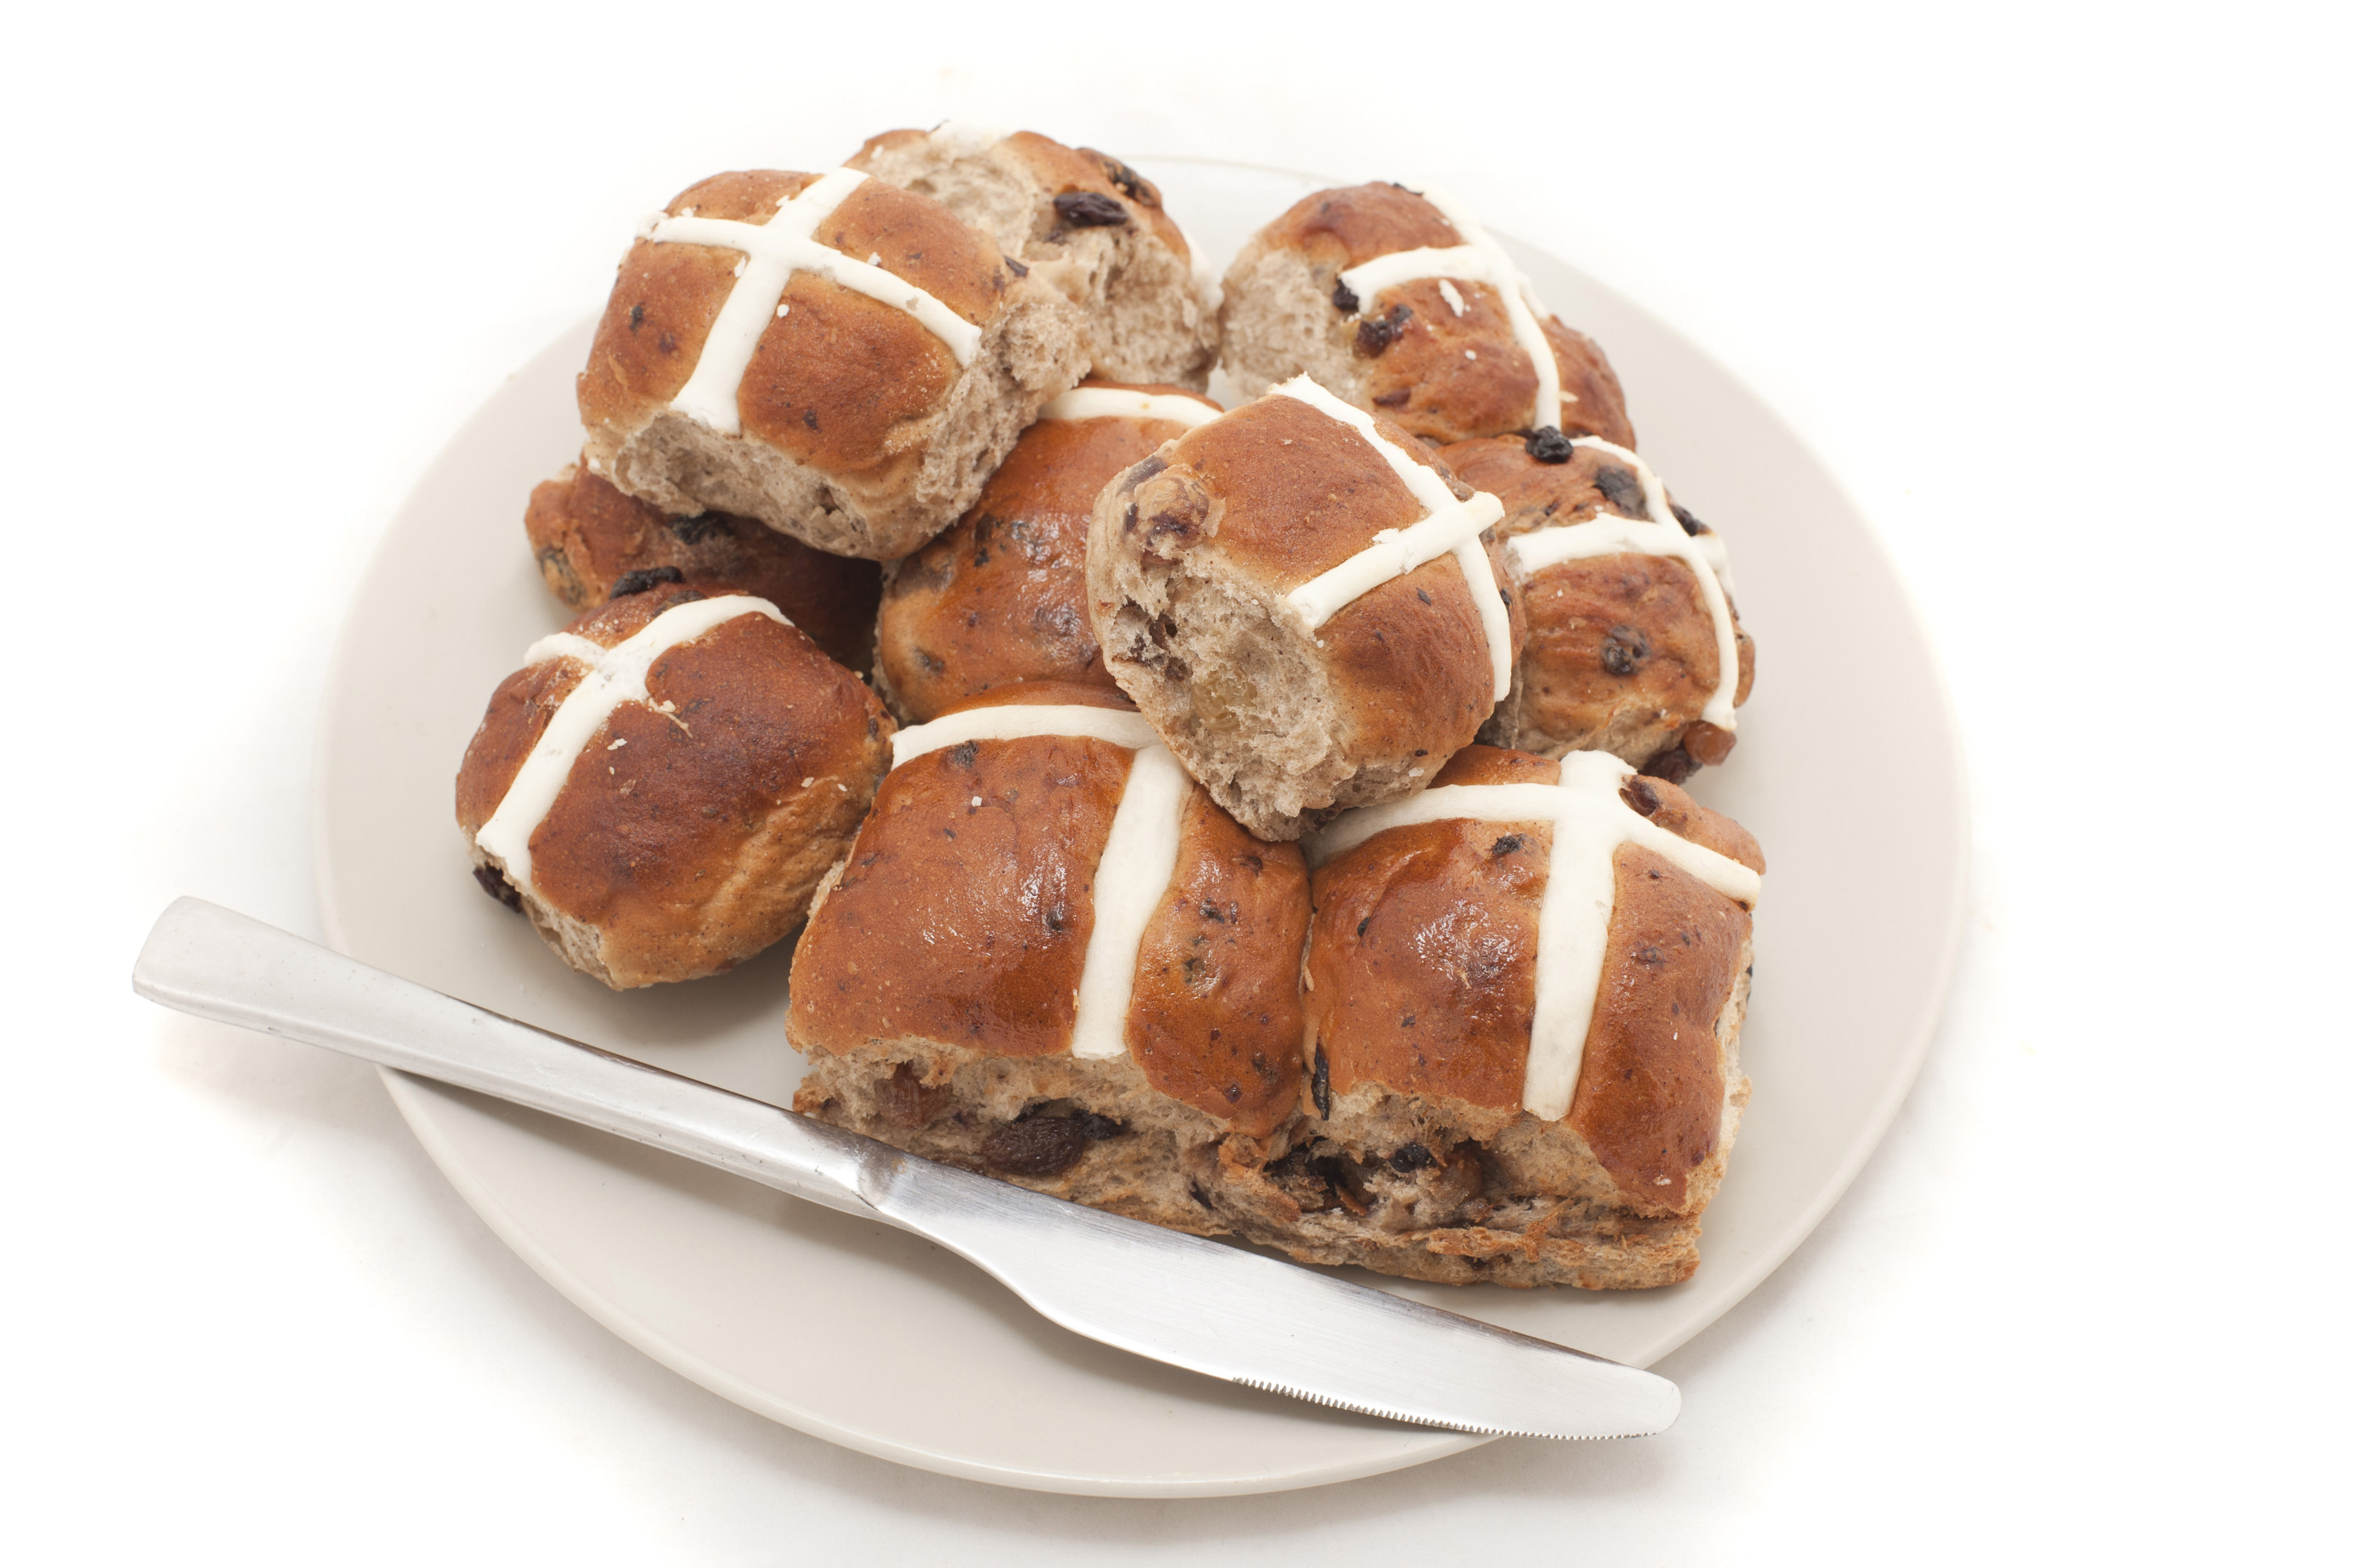 Still Life of Baked Hot Cross Buns Piled on White Plate with Silver Knife for Breakfast on White Background